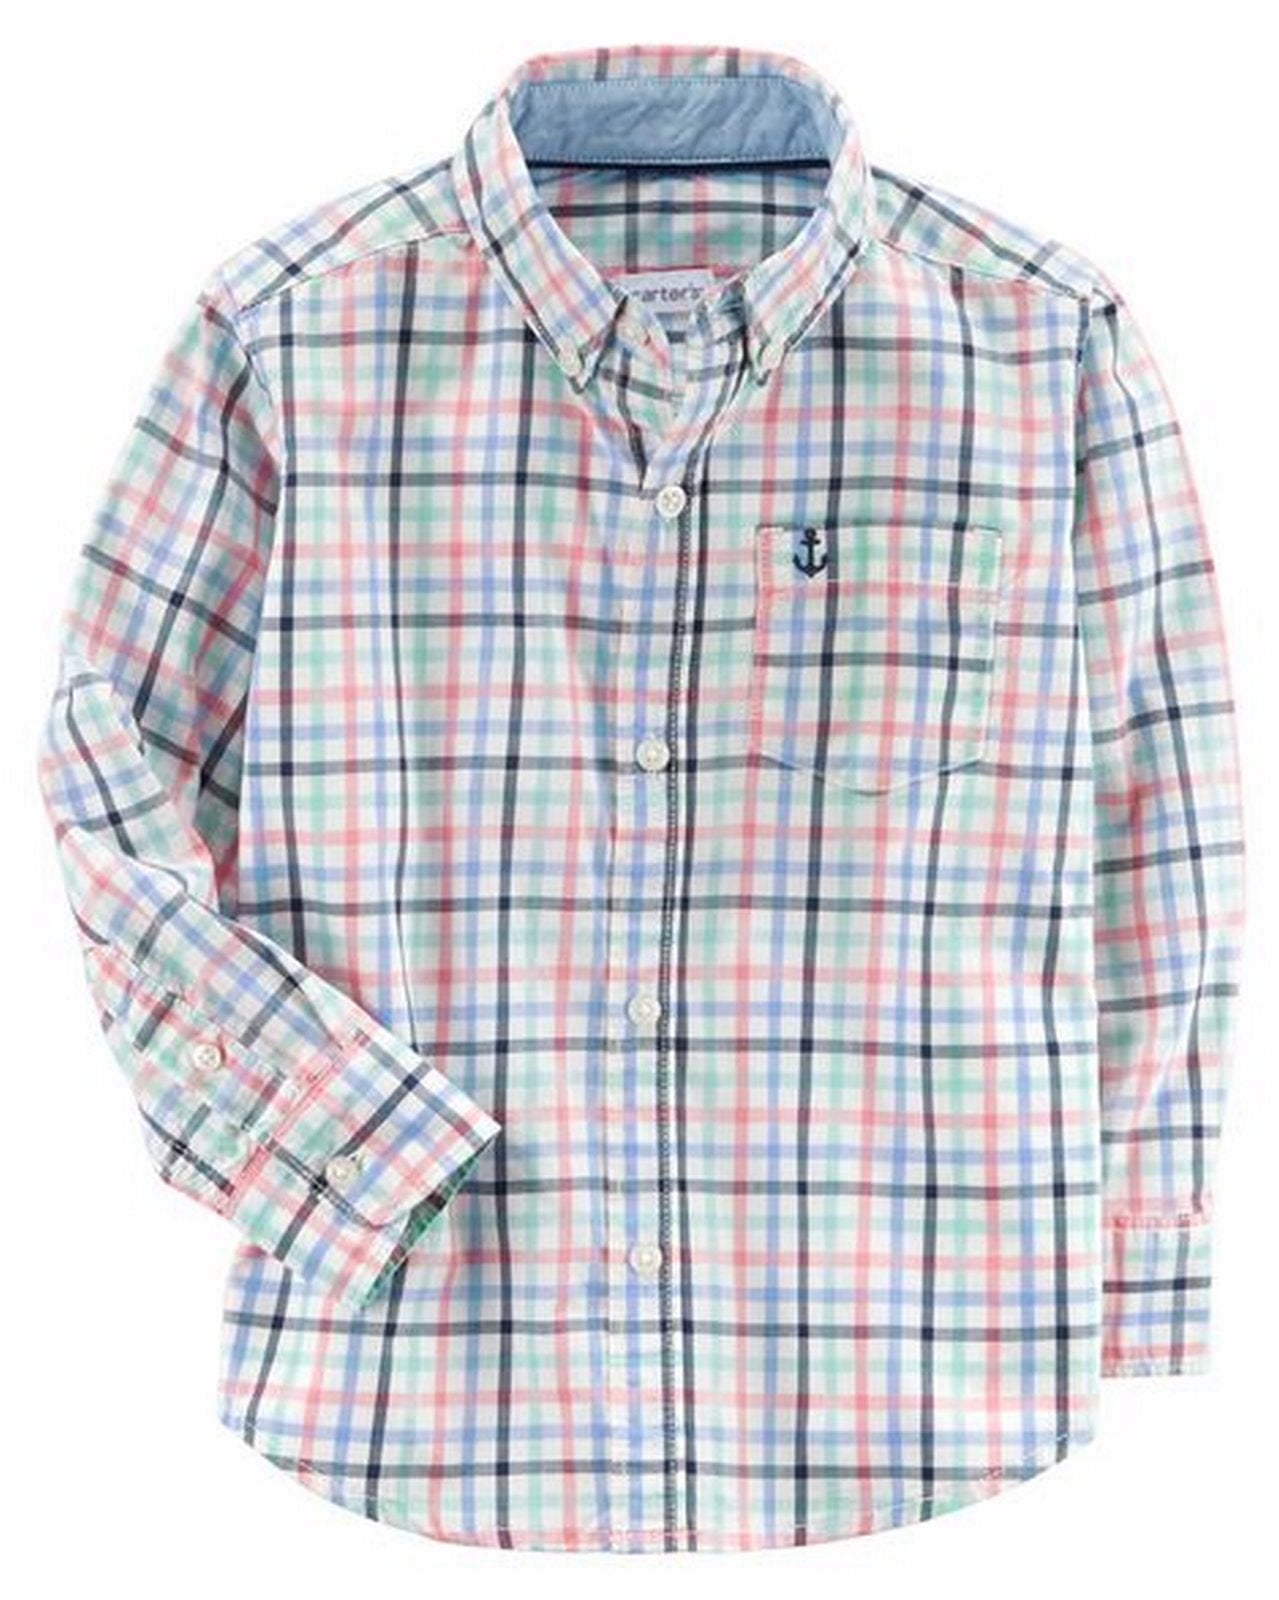 Carter's Plaid Poplin Button-Front Shirt  Modelo 243H522